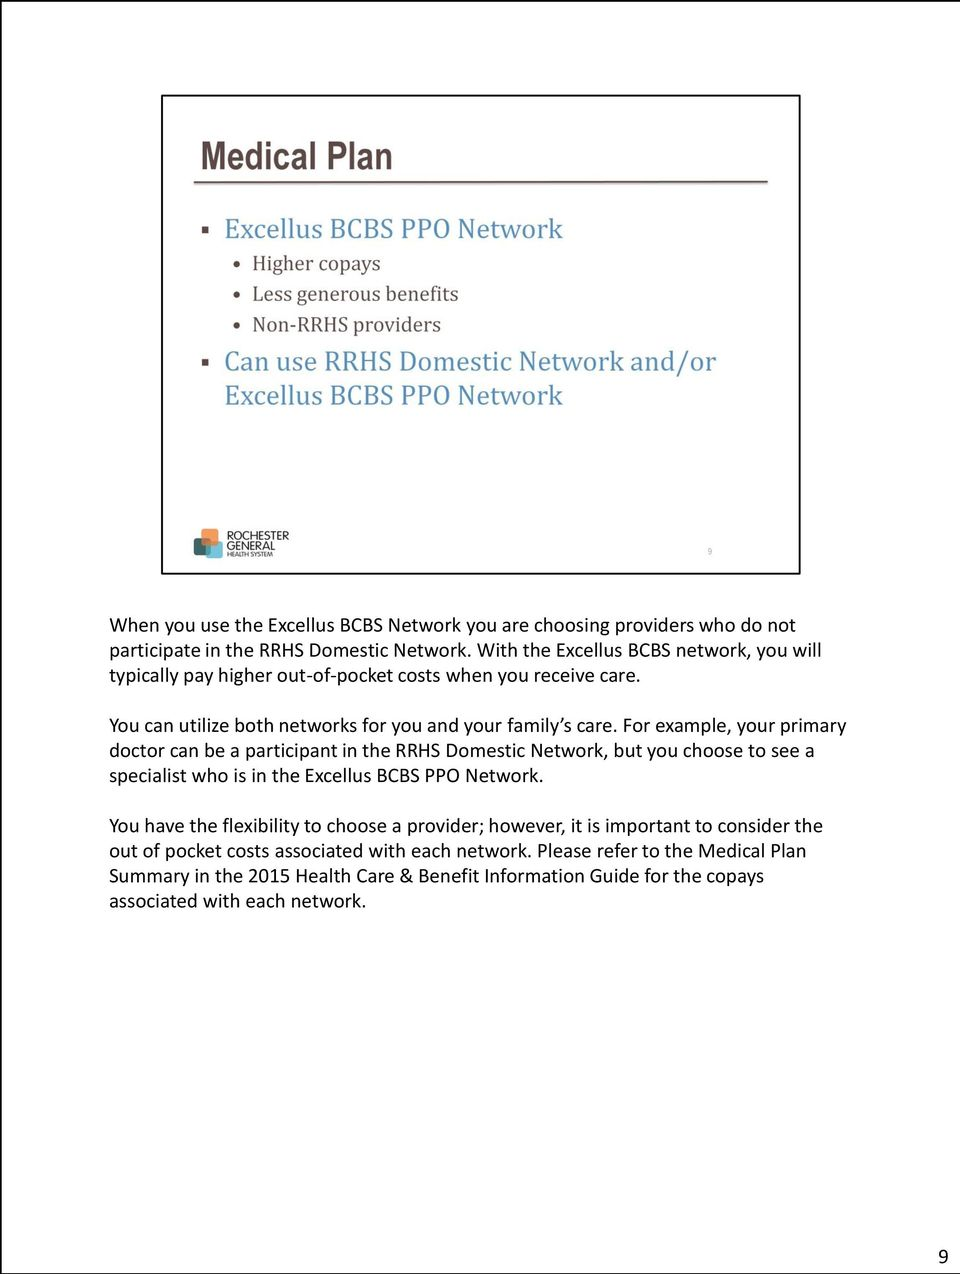 For example, your primary doctor can be a participant in the RRHS Domestic Network, but you choose to see a specialist who is in the Excellus BCBS PPO Network.